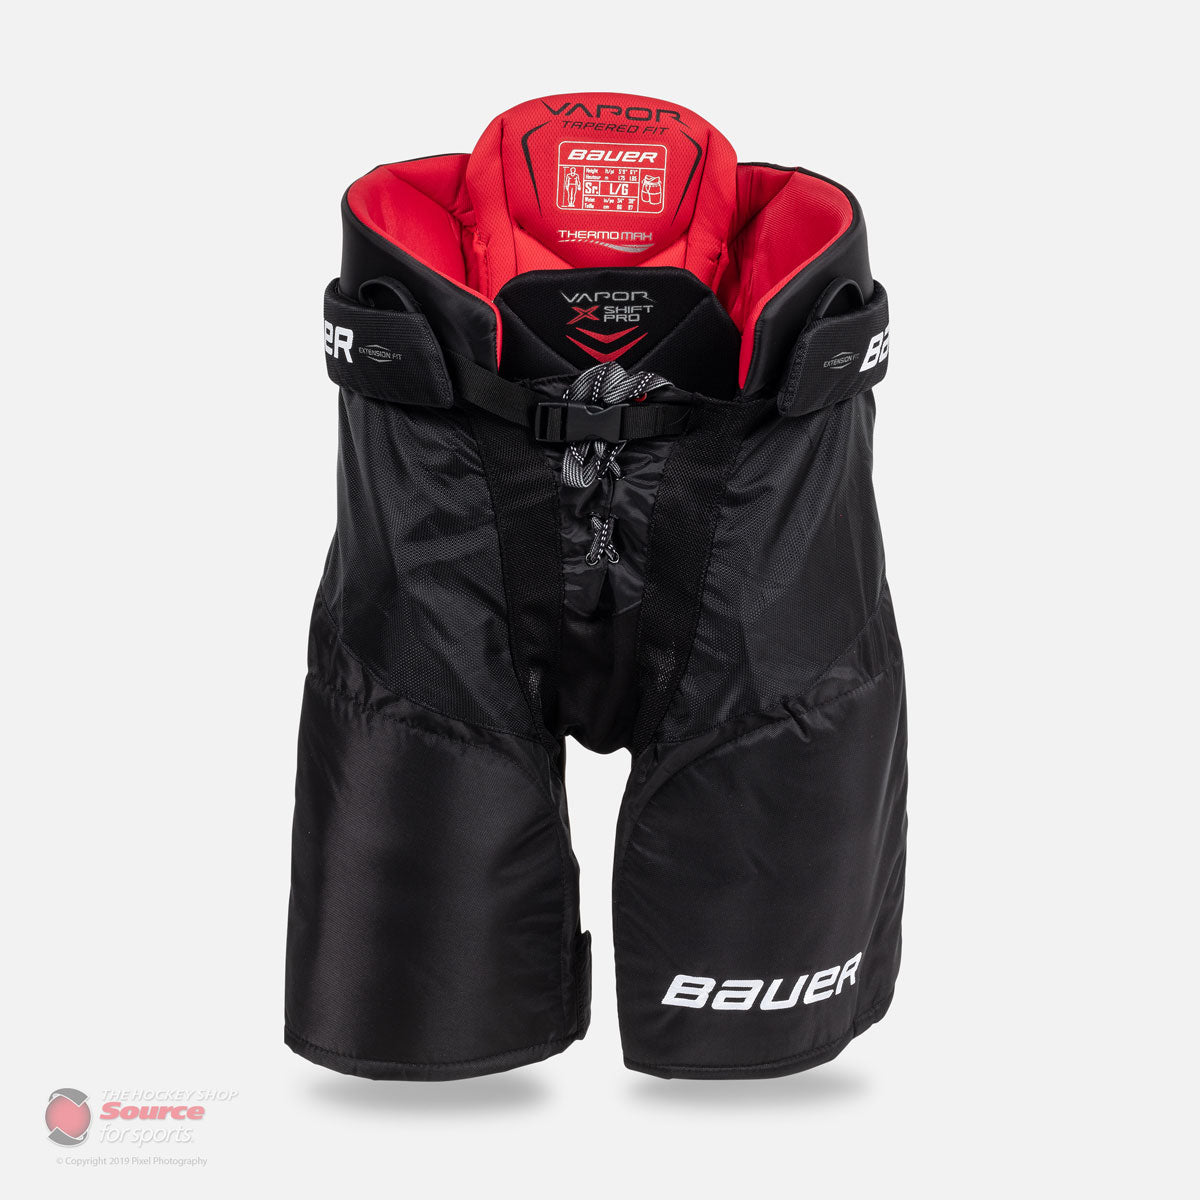 Bauer Vapor X Shift Pro Junior Hockey Pants